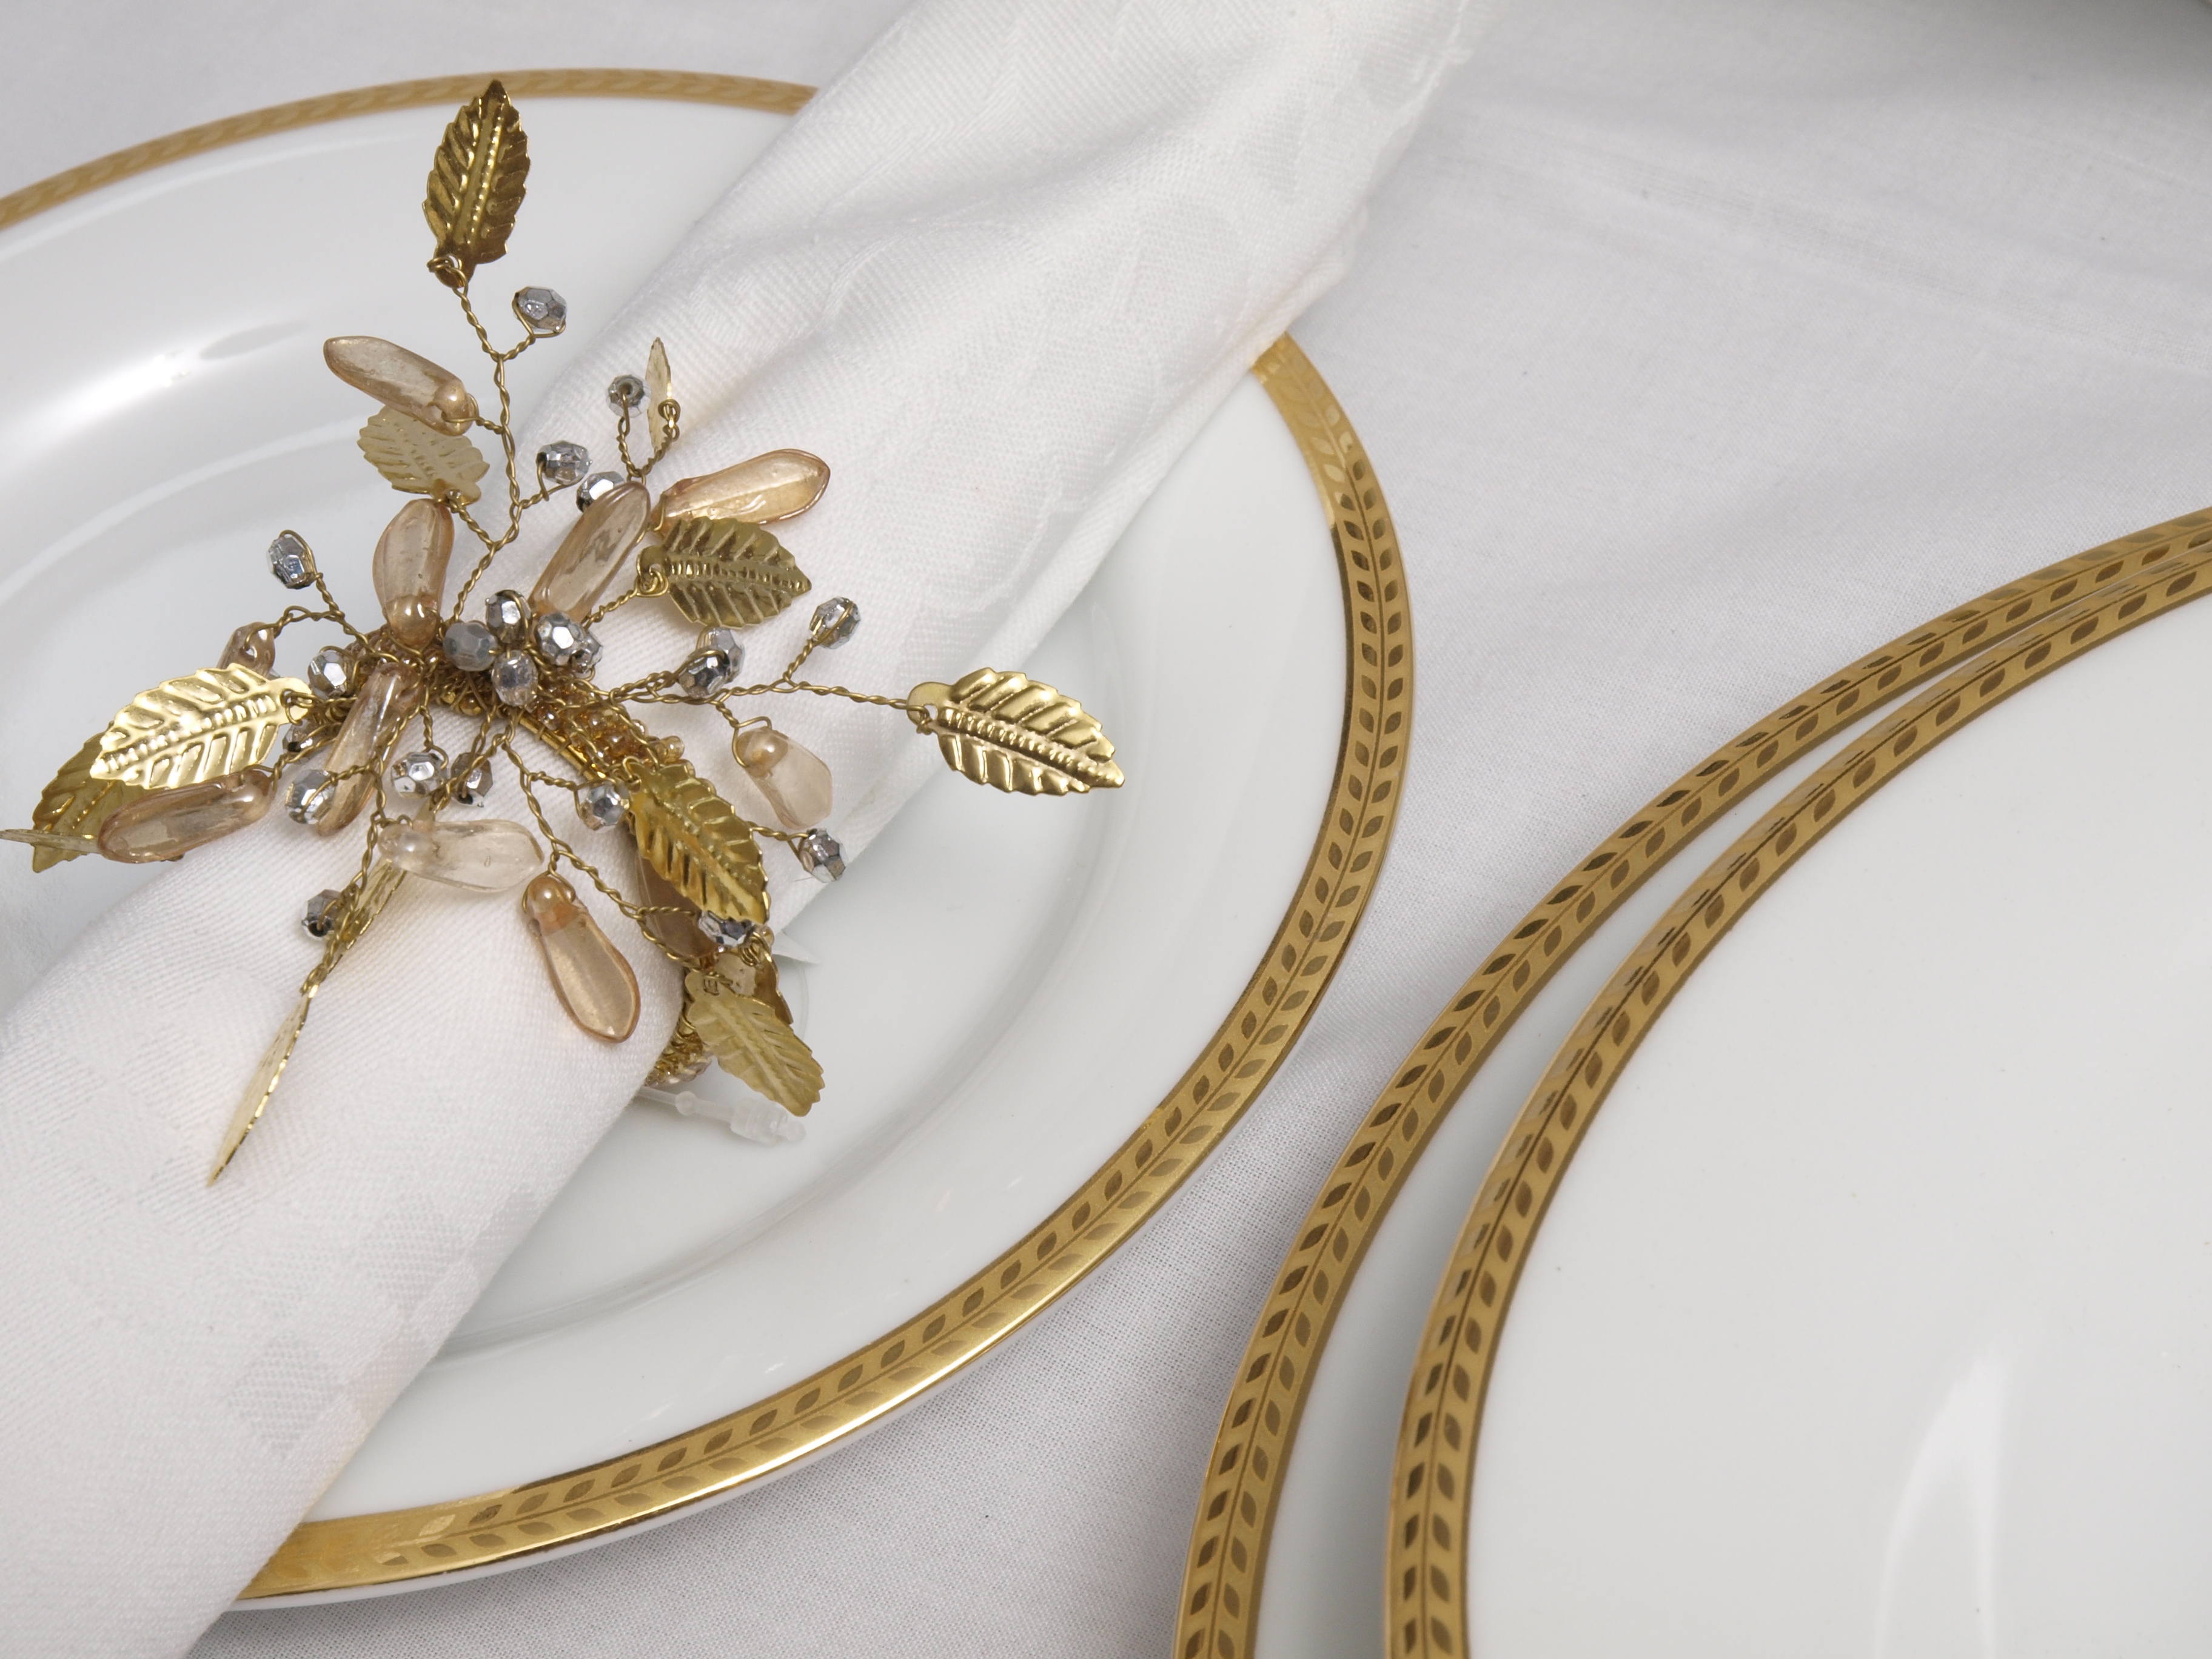 ETERNITY CLASSIC GOLD 56 PIECE DINNER SERVICE